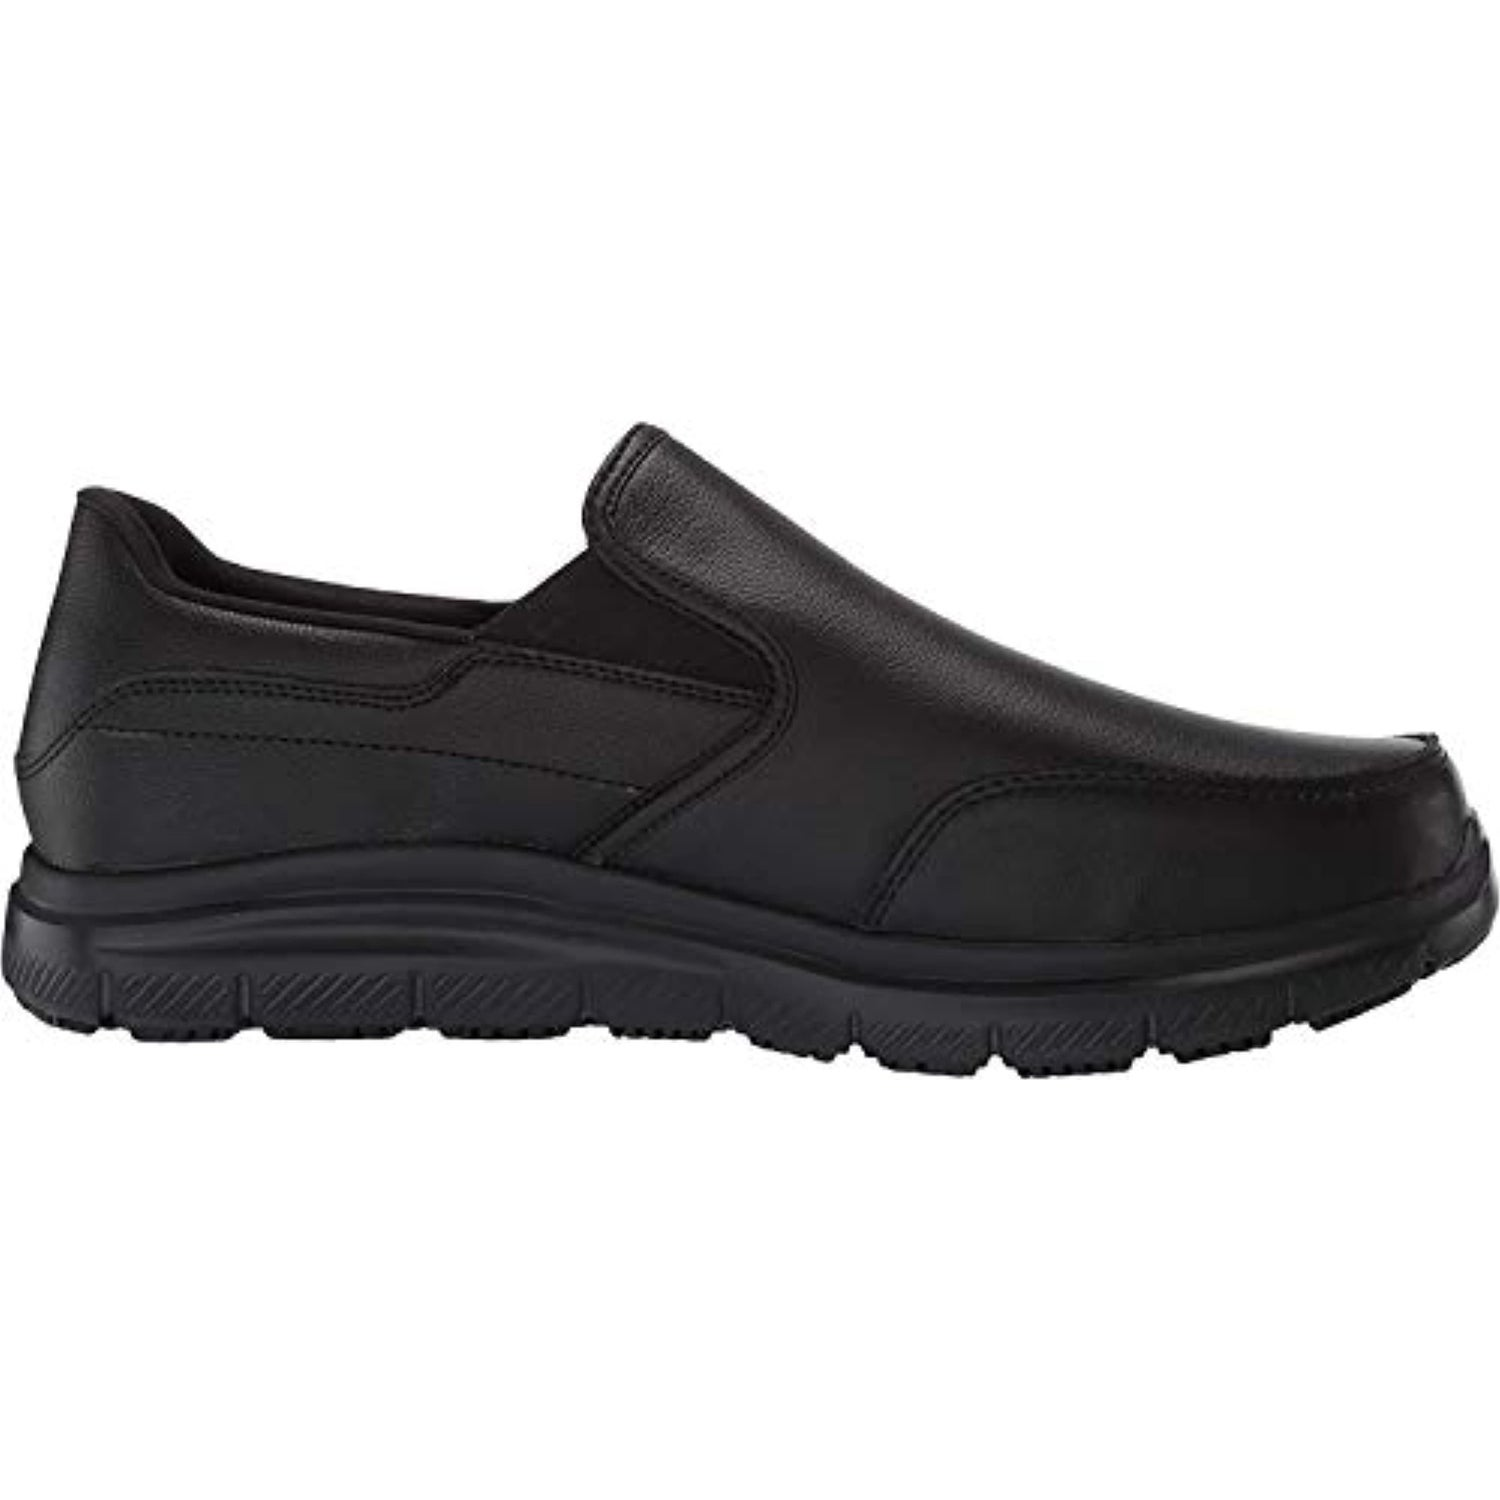 black leather slip on tennis shoes